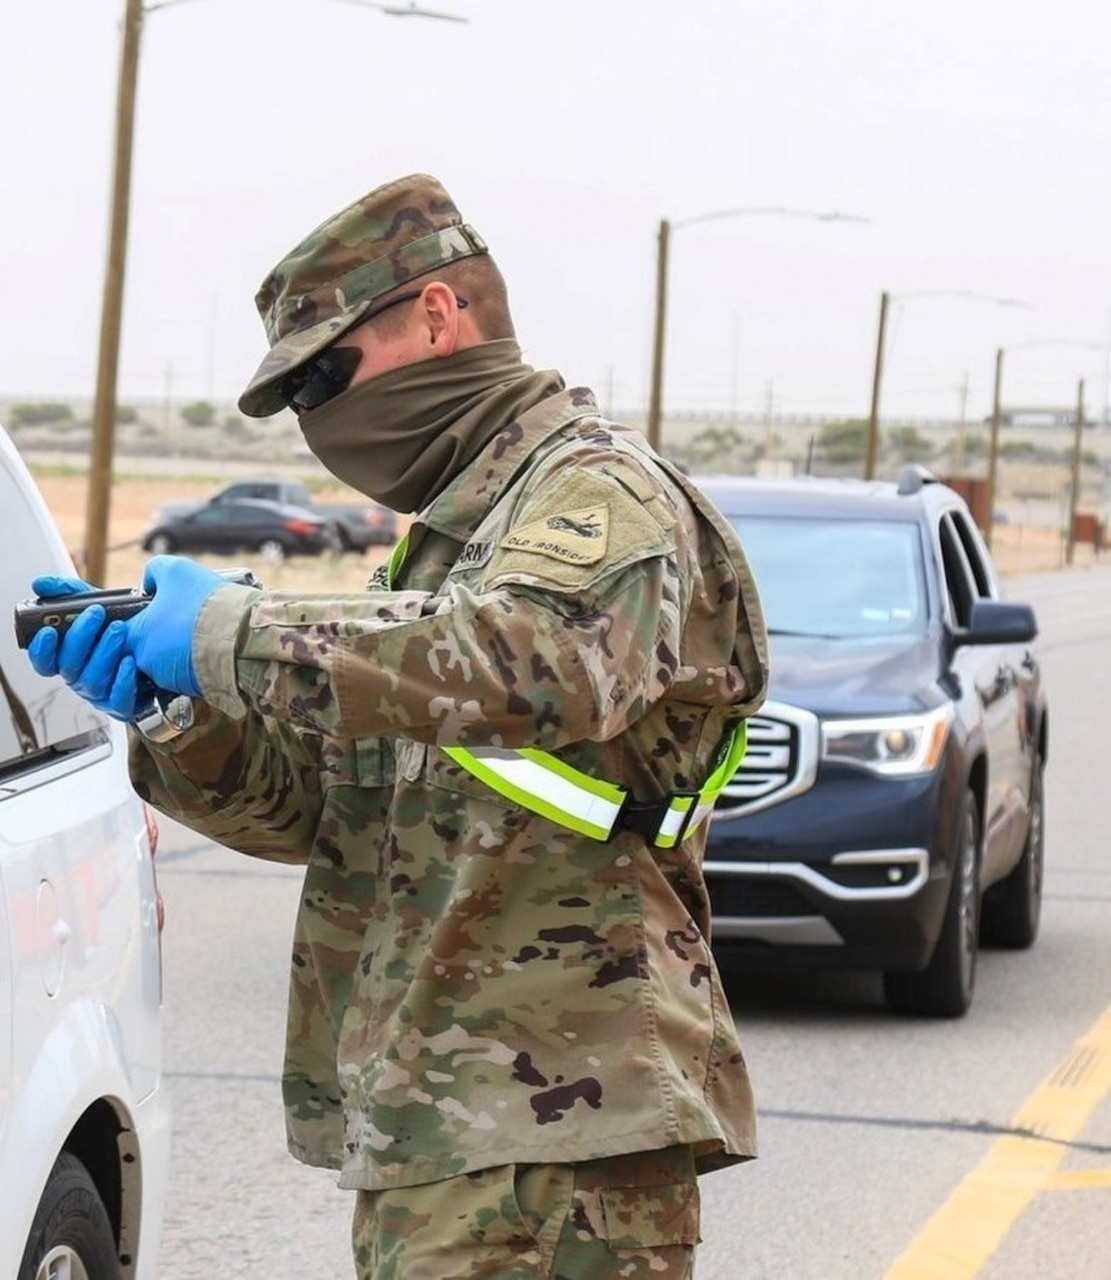 Soldier wears a face mask and gloves as protection.